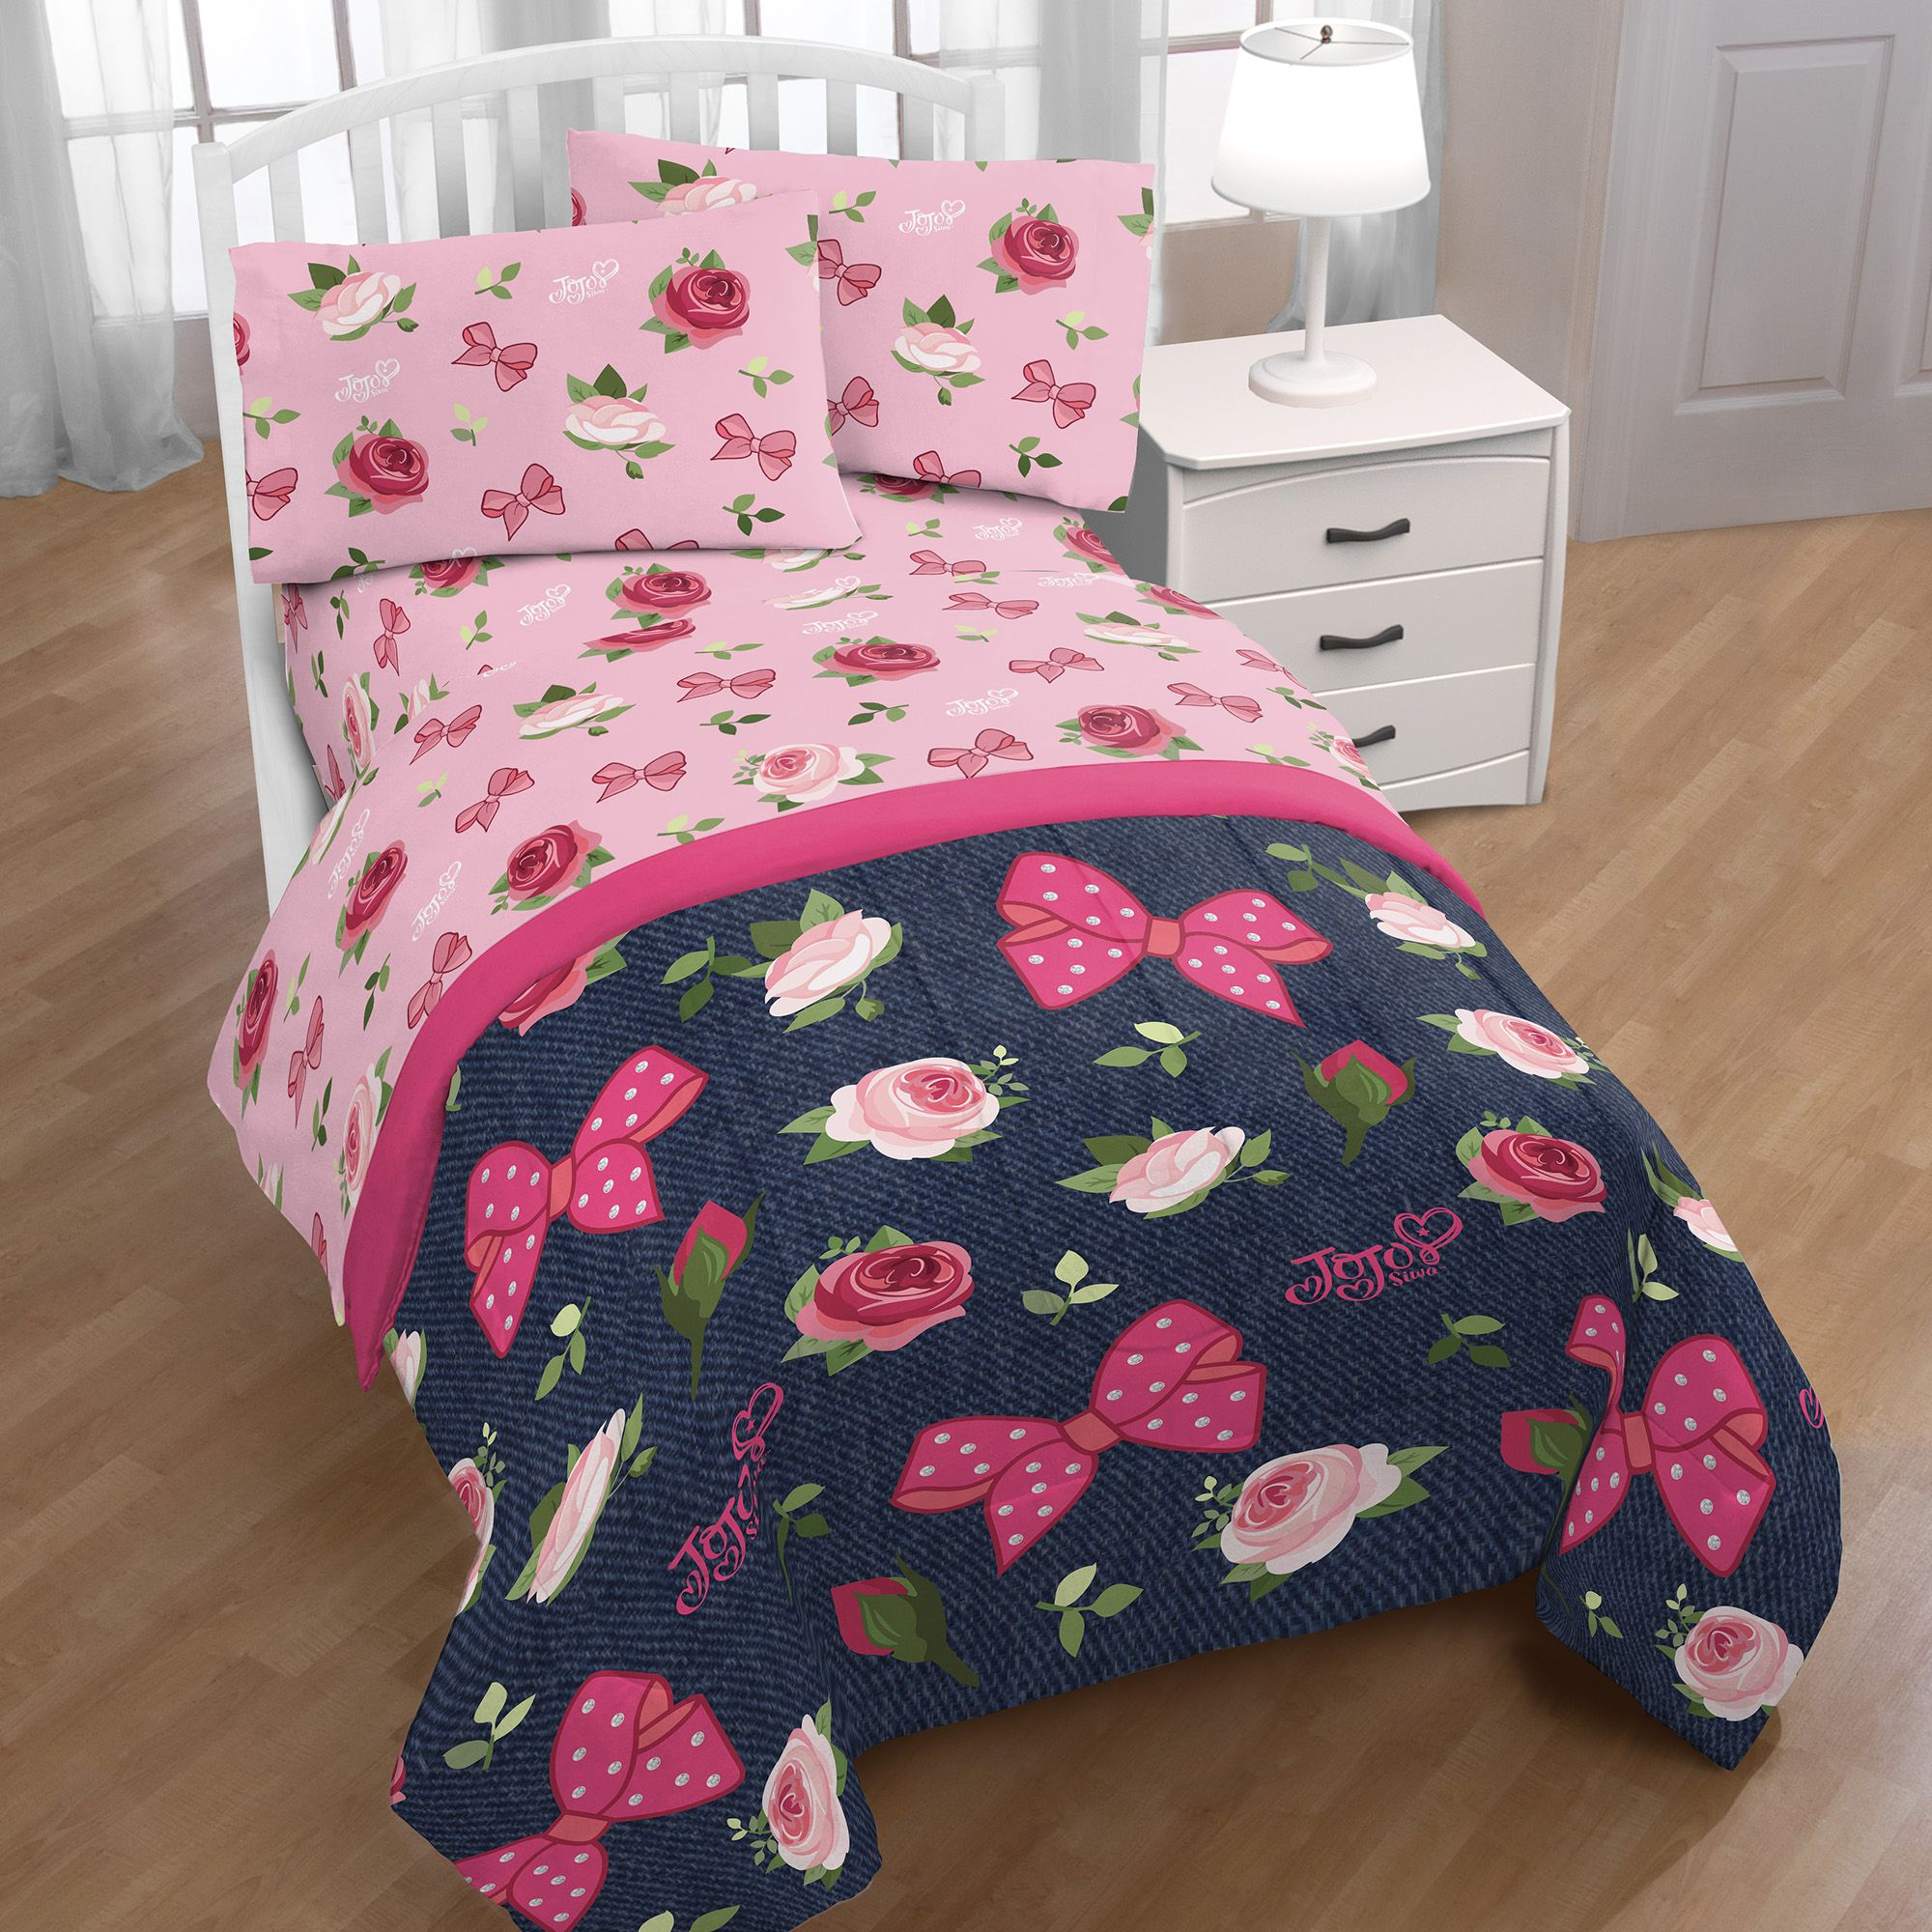 Jojo Siwa Roses & Bows 4 Piece Twin Bed In A Bag Pink/Blue